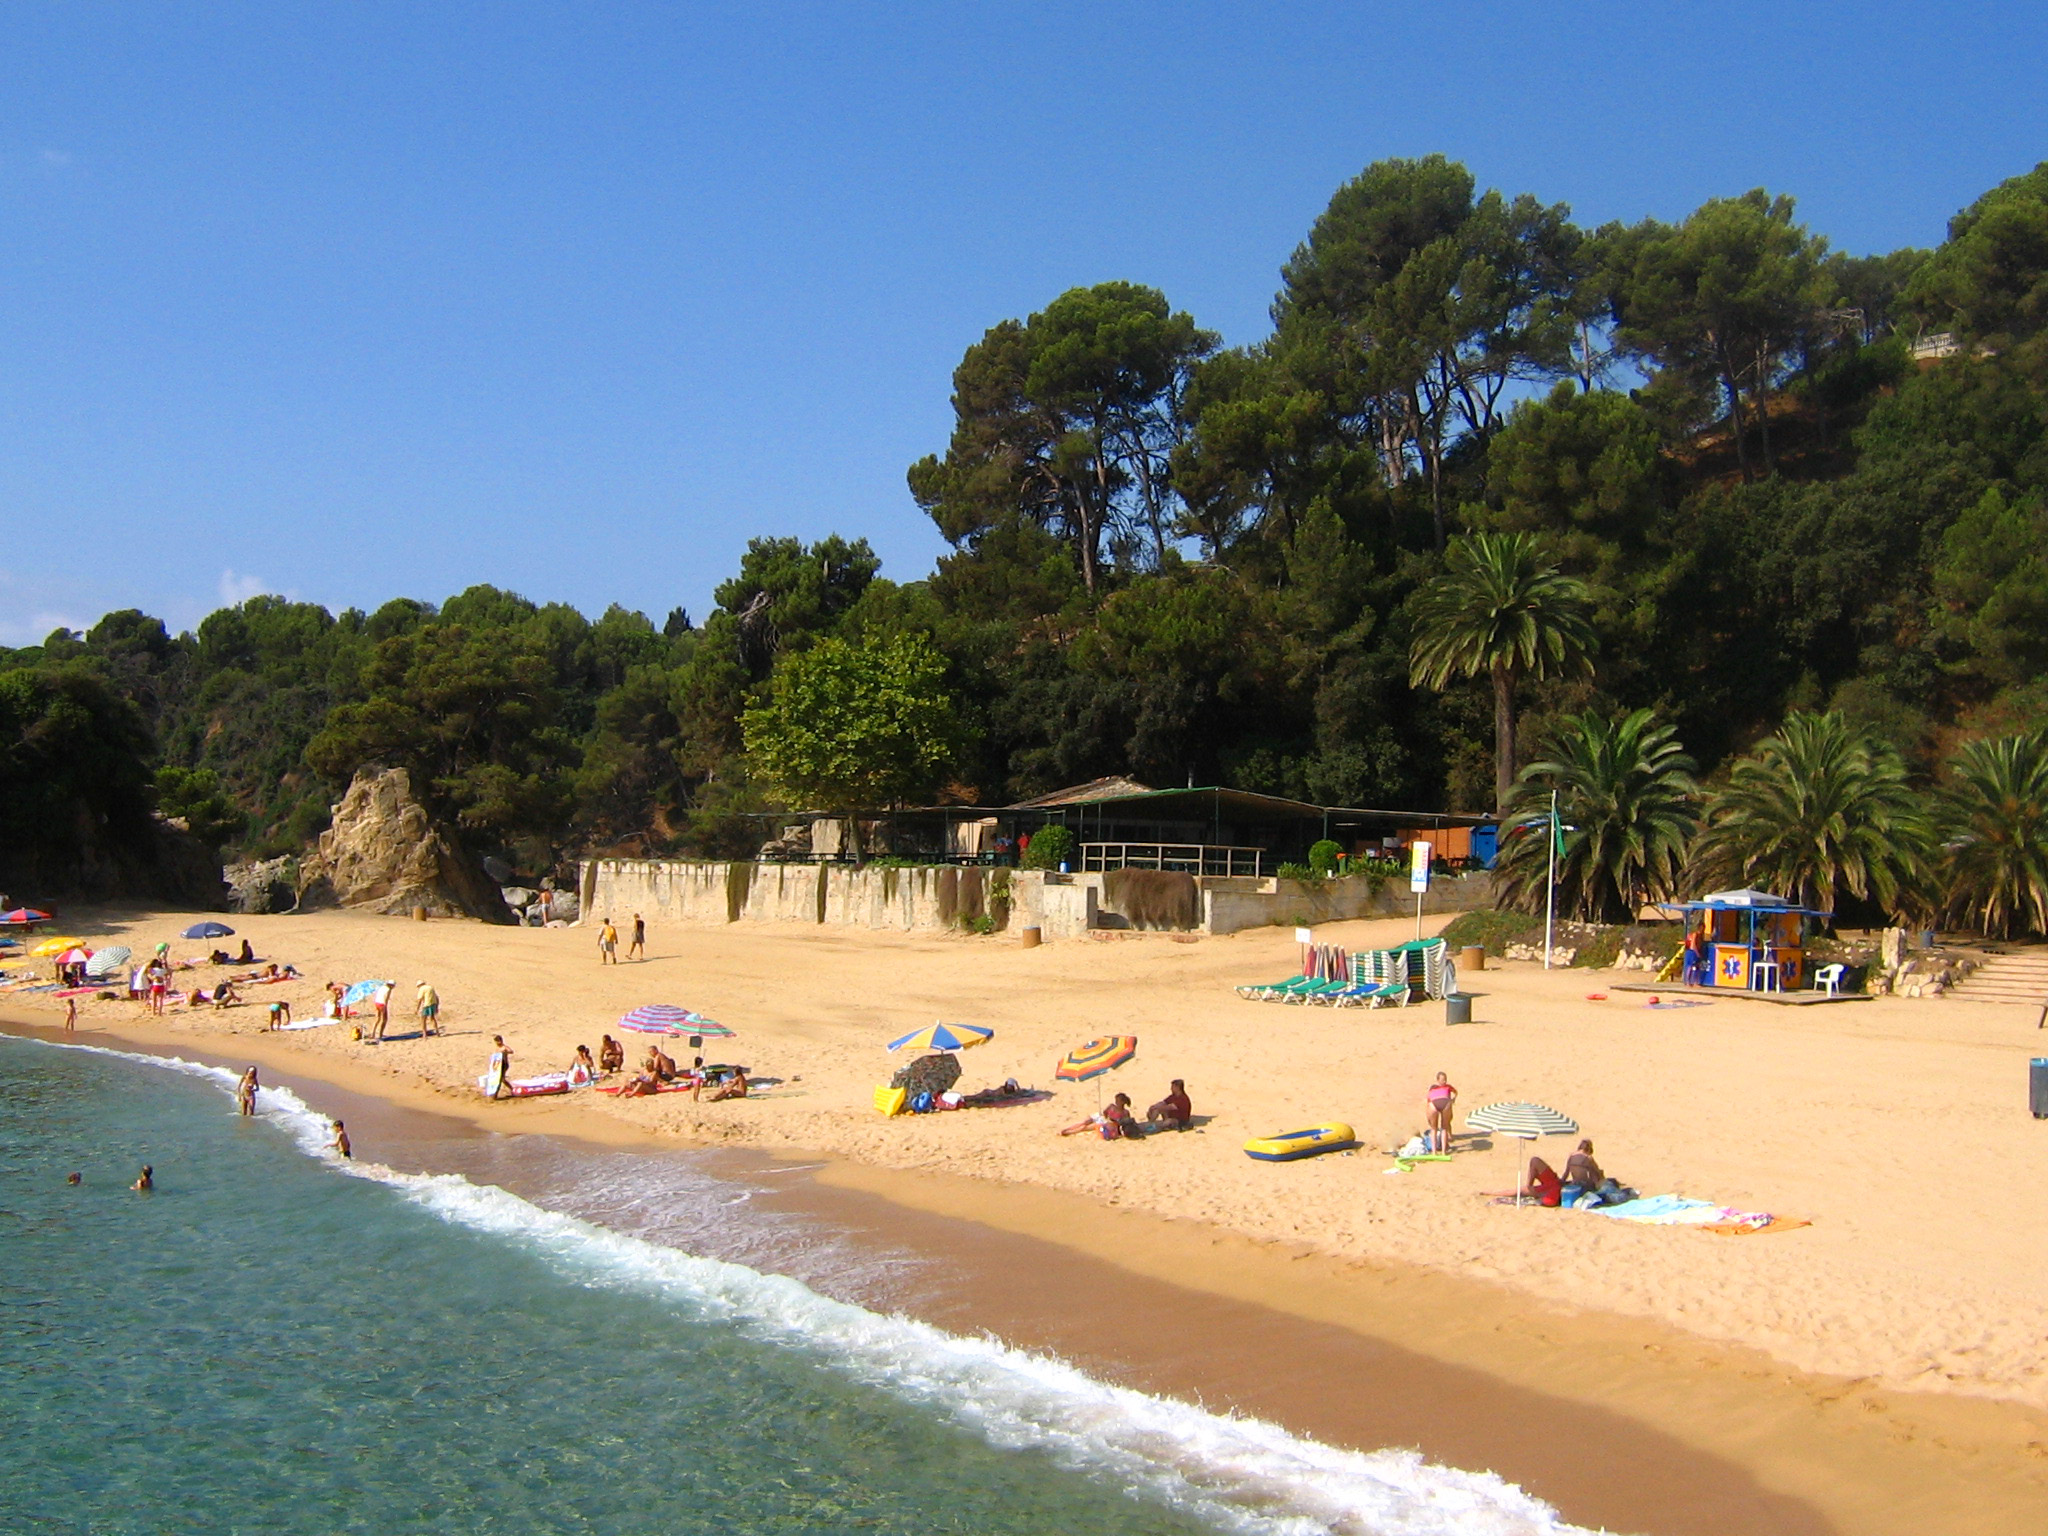 File:Costa Brava.jpg - Wikipedia